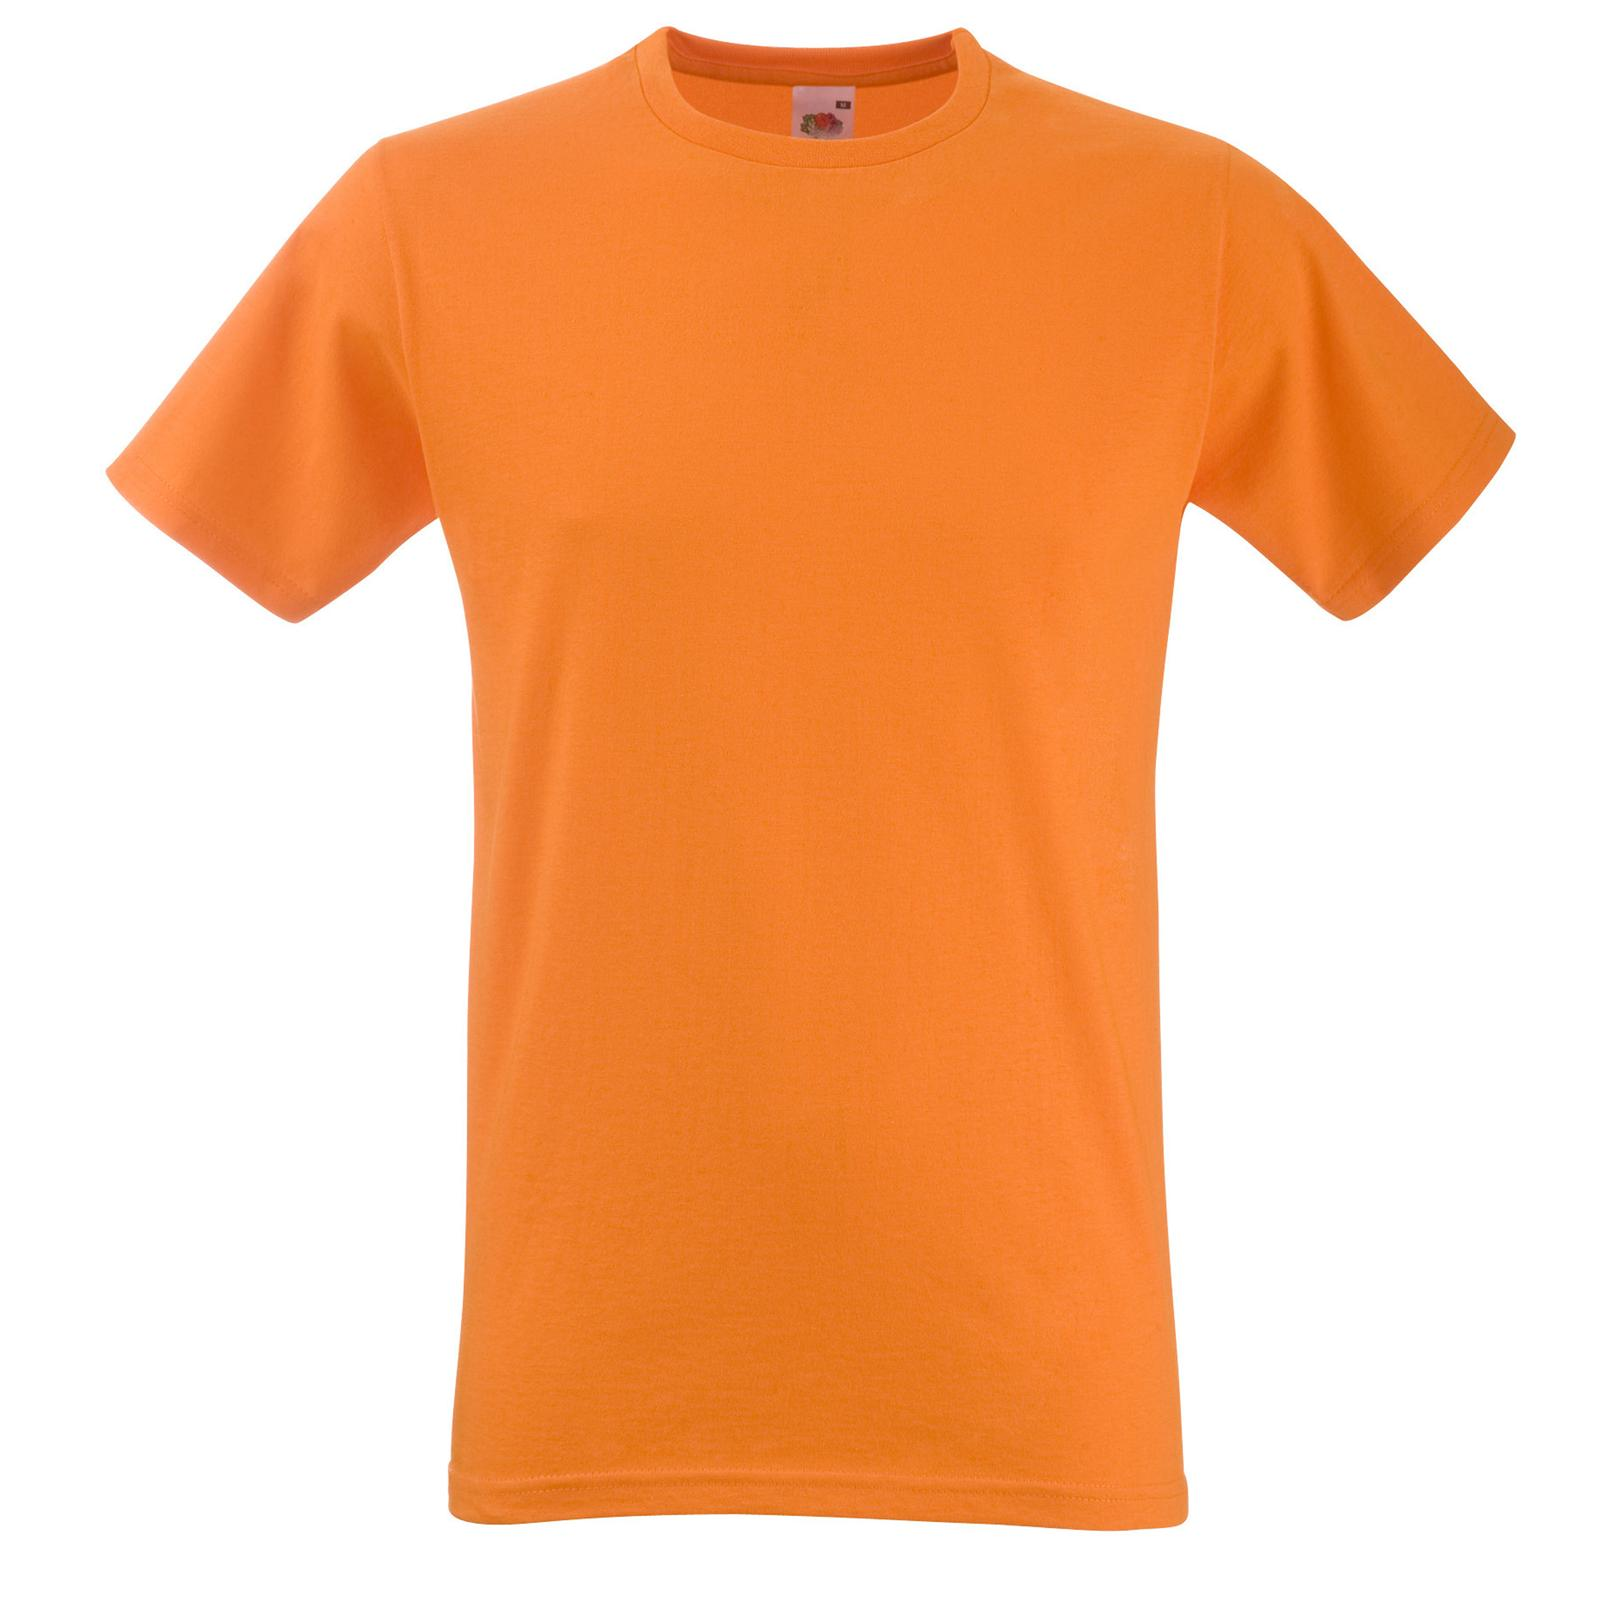 e561c1d2237 New Fruit of the Loom Mens Fitted Cotton Valueweight T Shirt in 9 ...